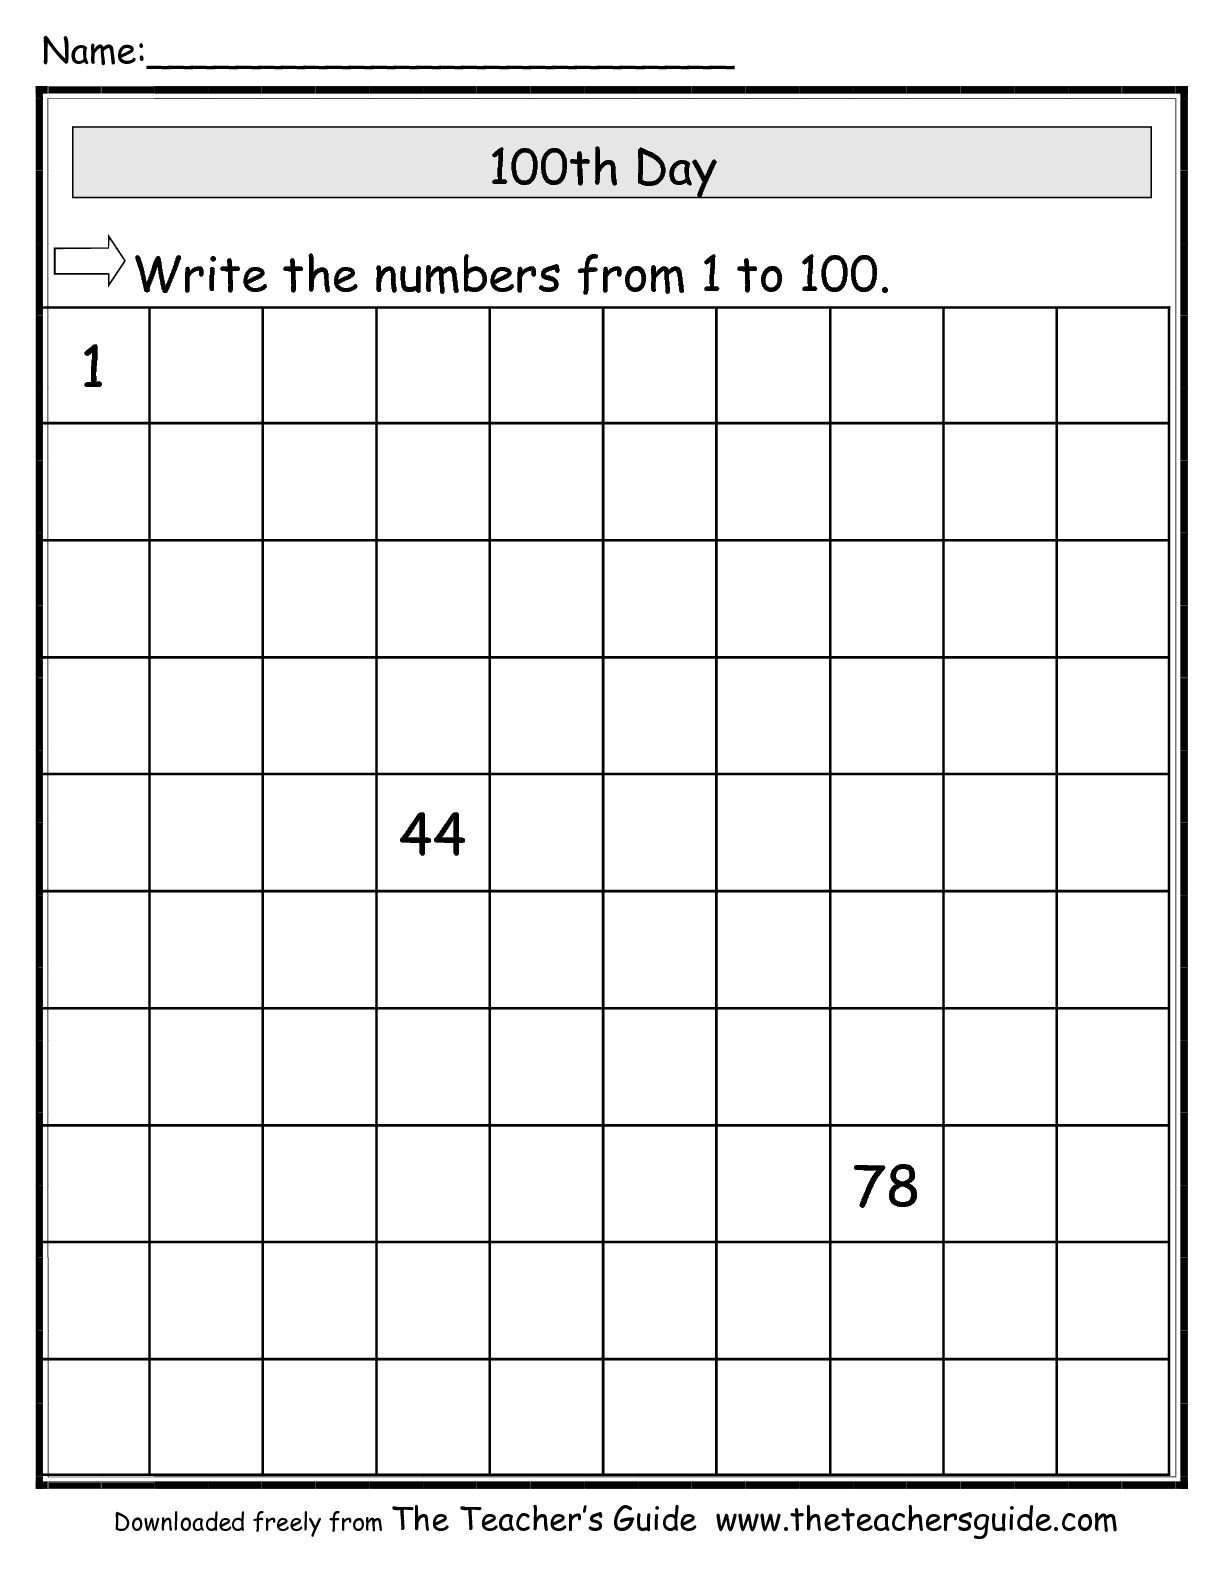 100th day coloring pages - 100thday